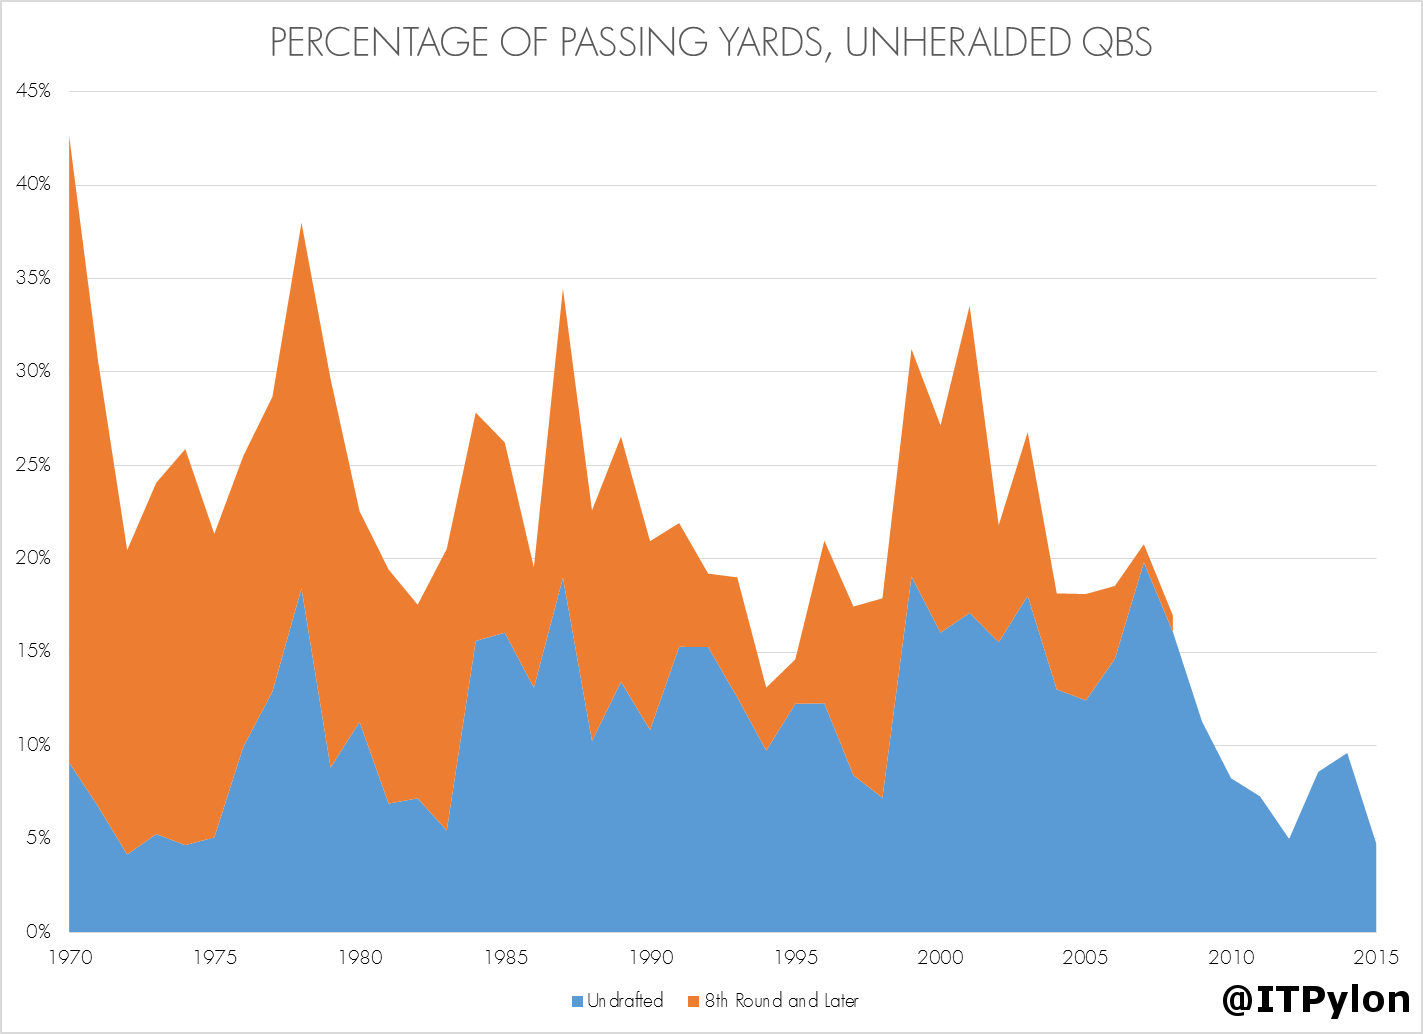 Percentage of Passing Yards Unheralded QBs